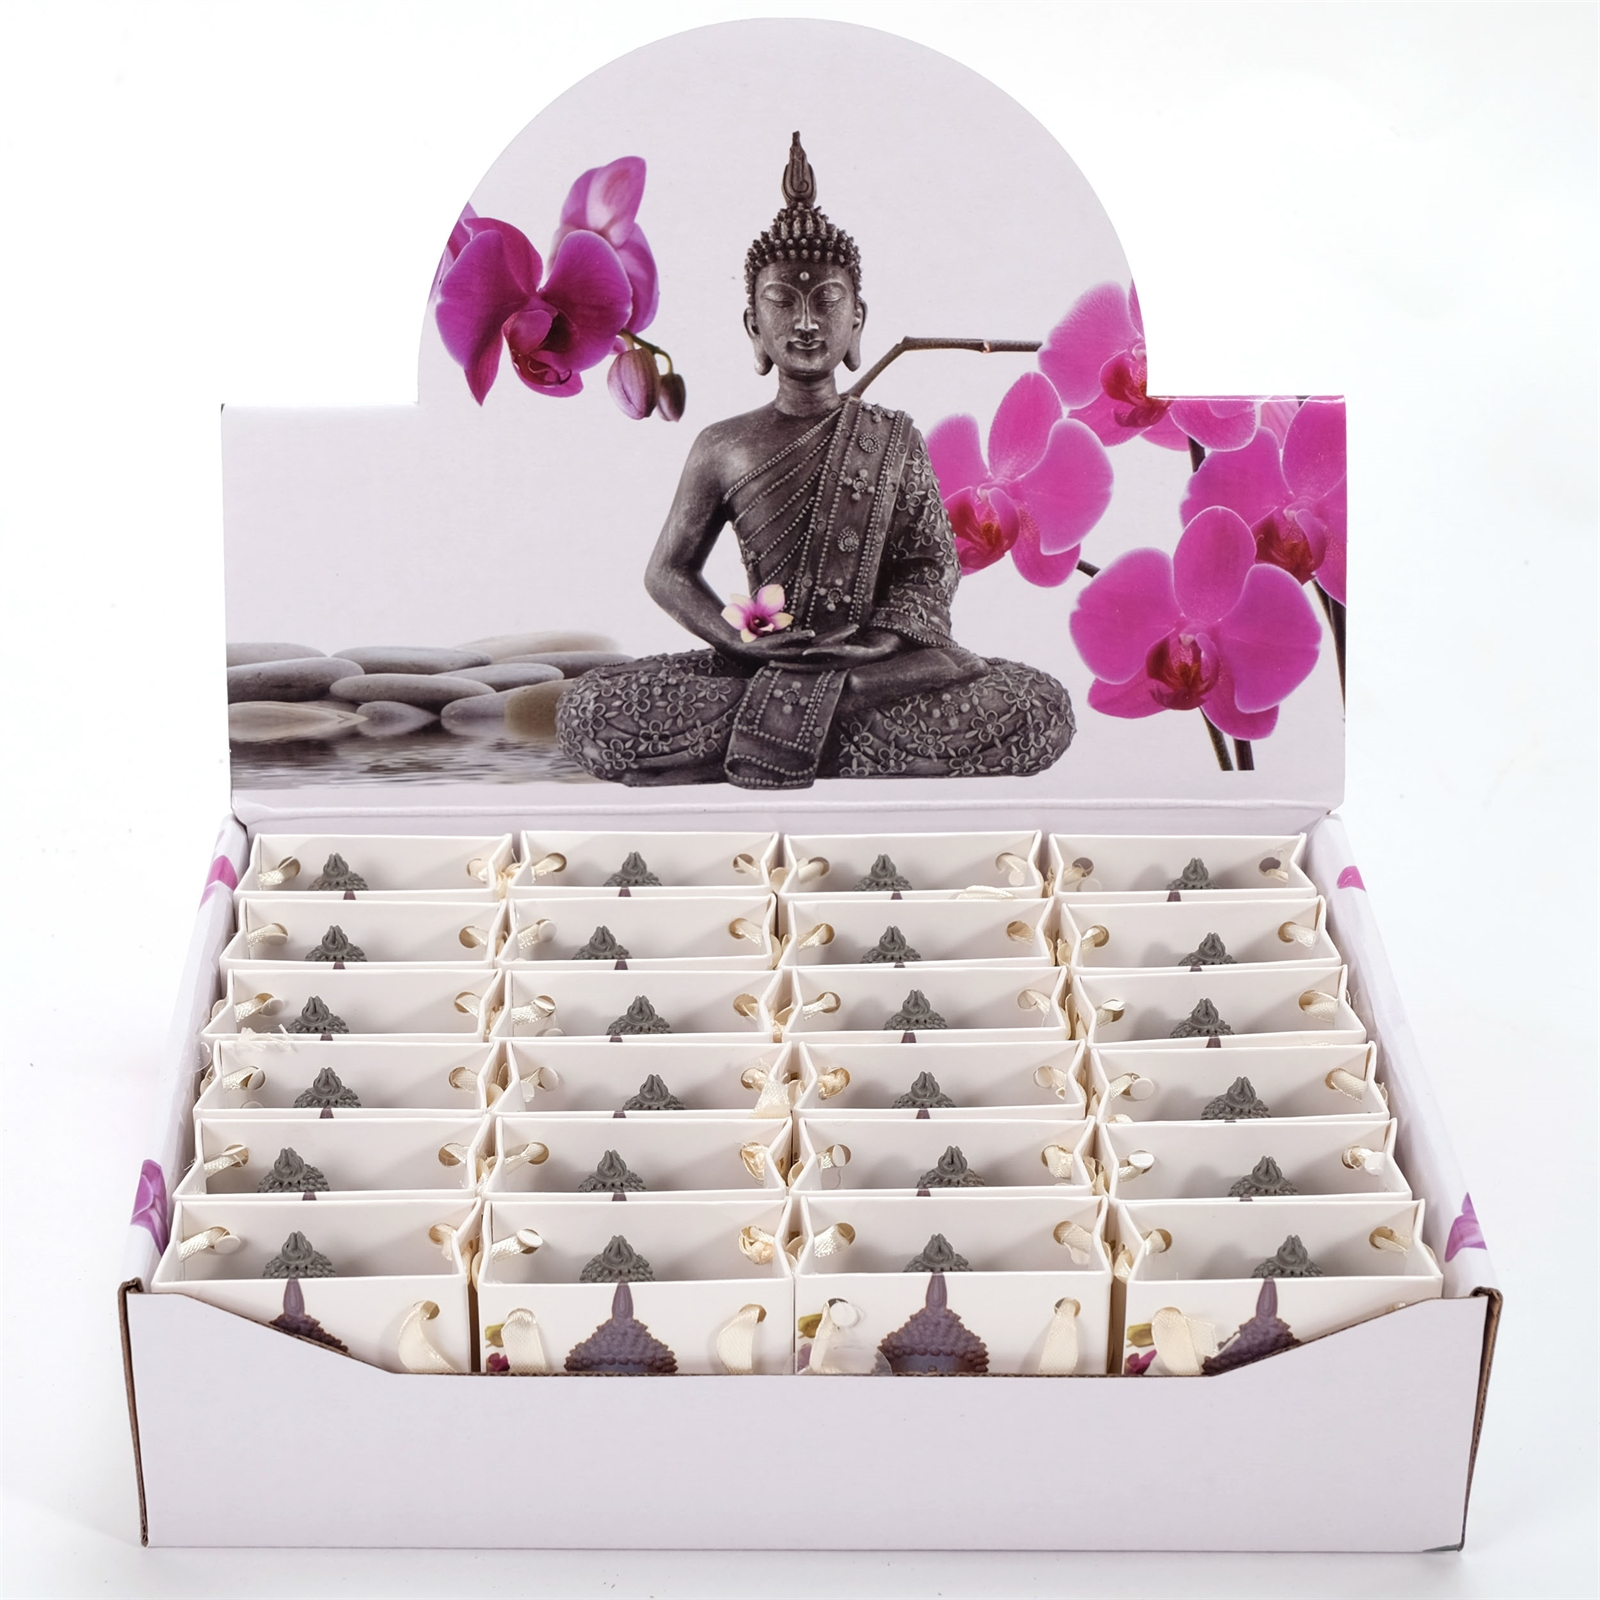 kleine deko figuren mini buddha 24er set grau braun 5 5 cm sitzend ebay. Black Bedroom Furniture Sets. Home Design Ideas